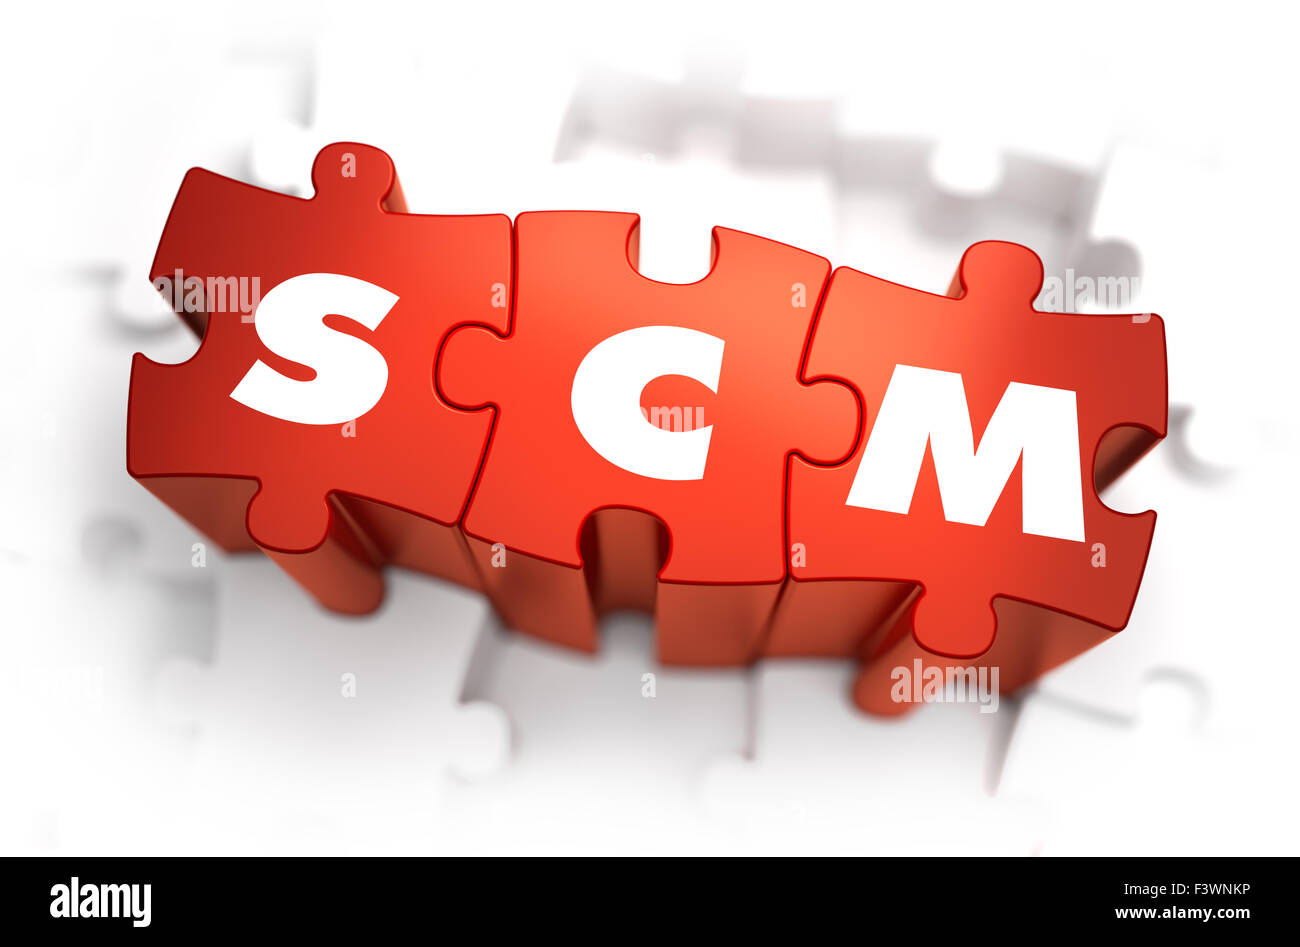 SCM - Supply Chain Management - Text on Red Puzzles with White ...